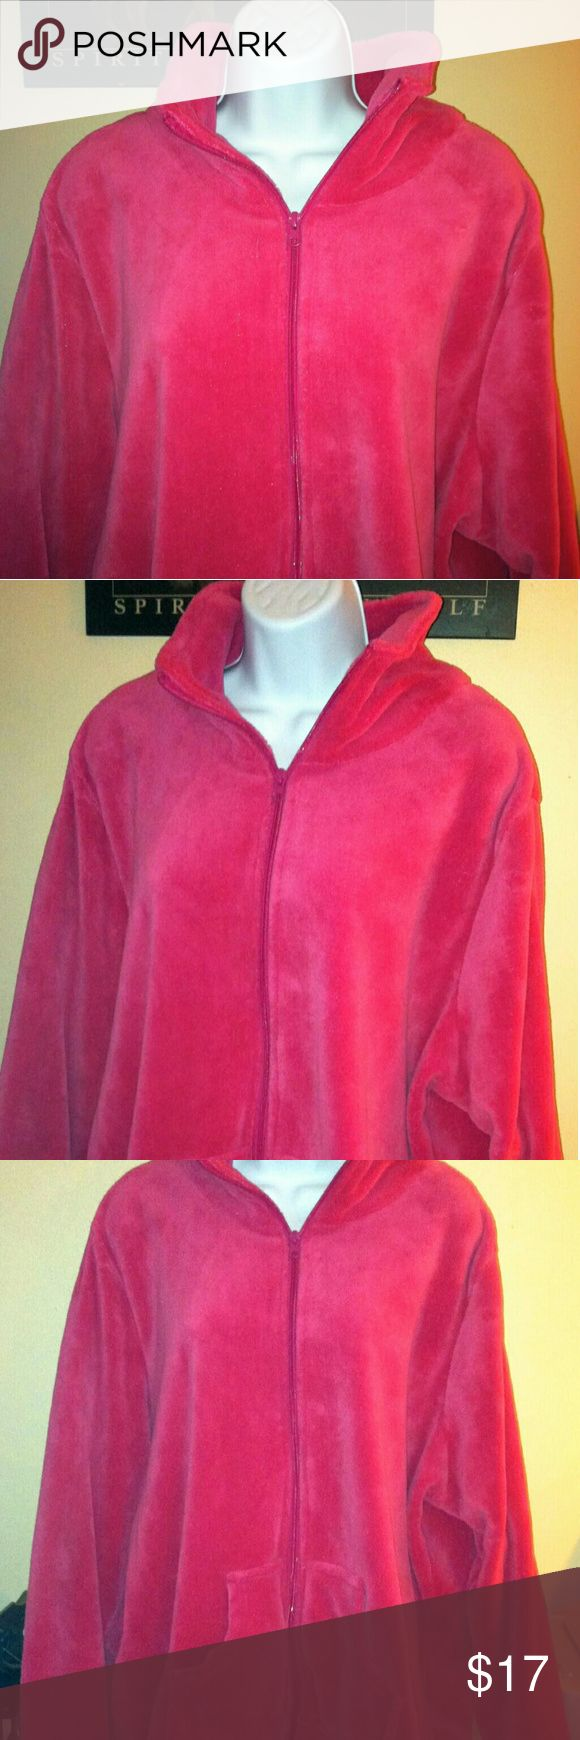 Women's 4X dark pink fleece jacket This womens plus size fleece jacket is in excellent pre owned condition. A very dark pink and not a hot pink. Plus size 4X. Brand is PinkK. This has no damages, it is clean and stain. No fading to this as it was rarely ever worn. Has it's two front pockets and full front zip up. Medium thickness and very good for an extra layer. Overall excellent condition. PinkK Tops Sweatshirts & Hoodies